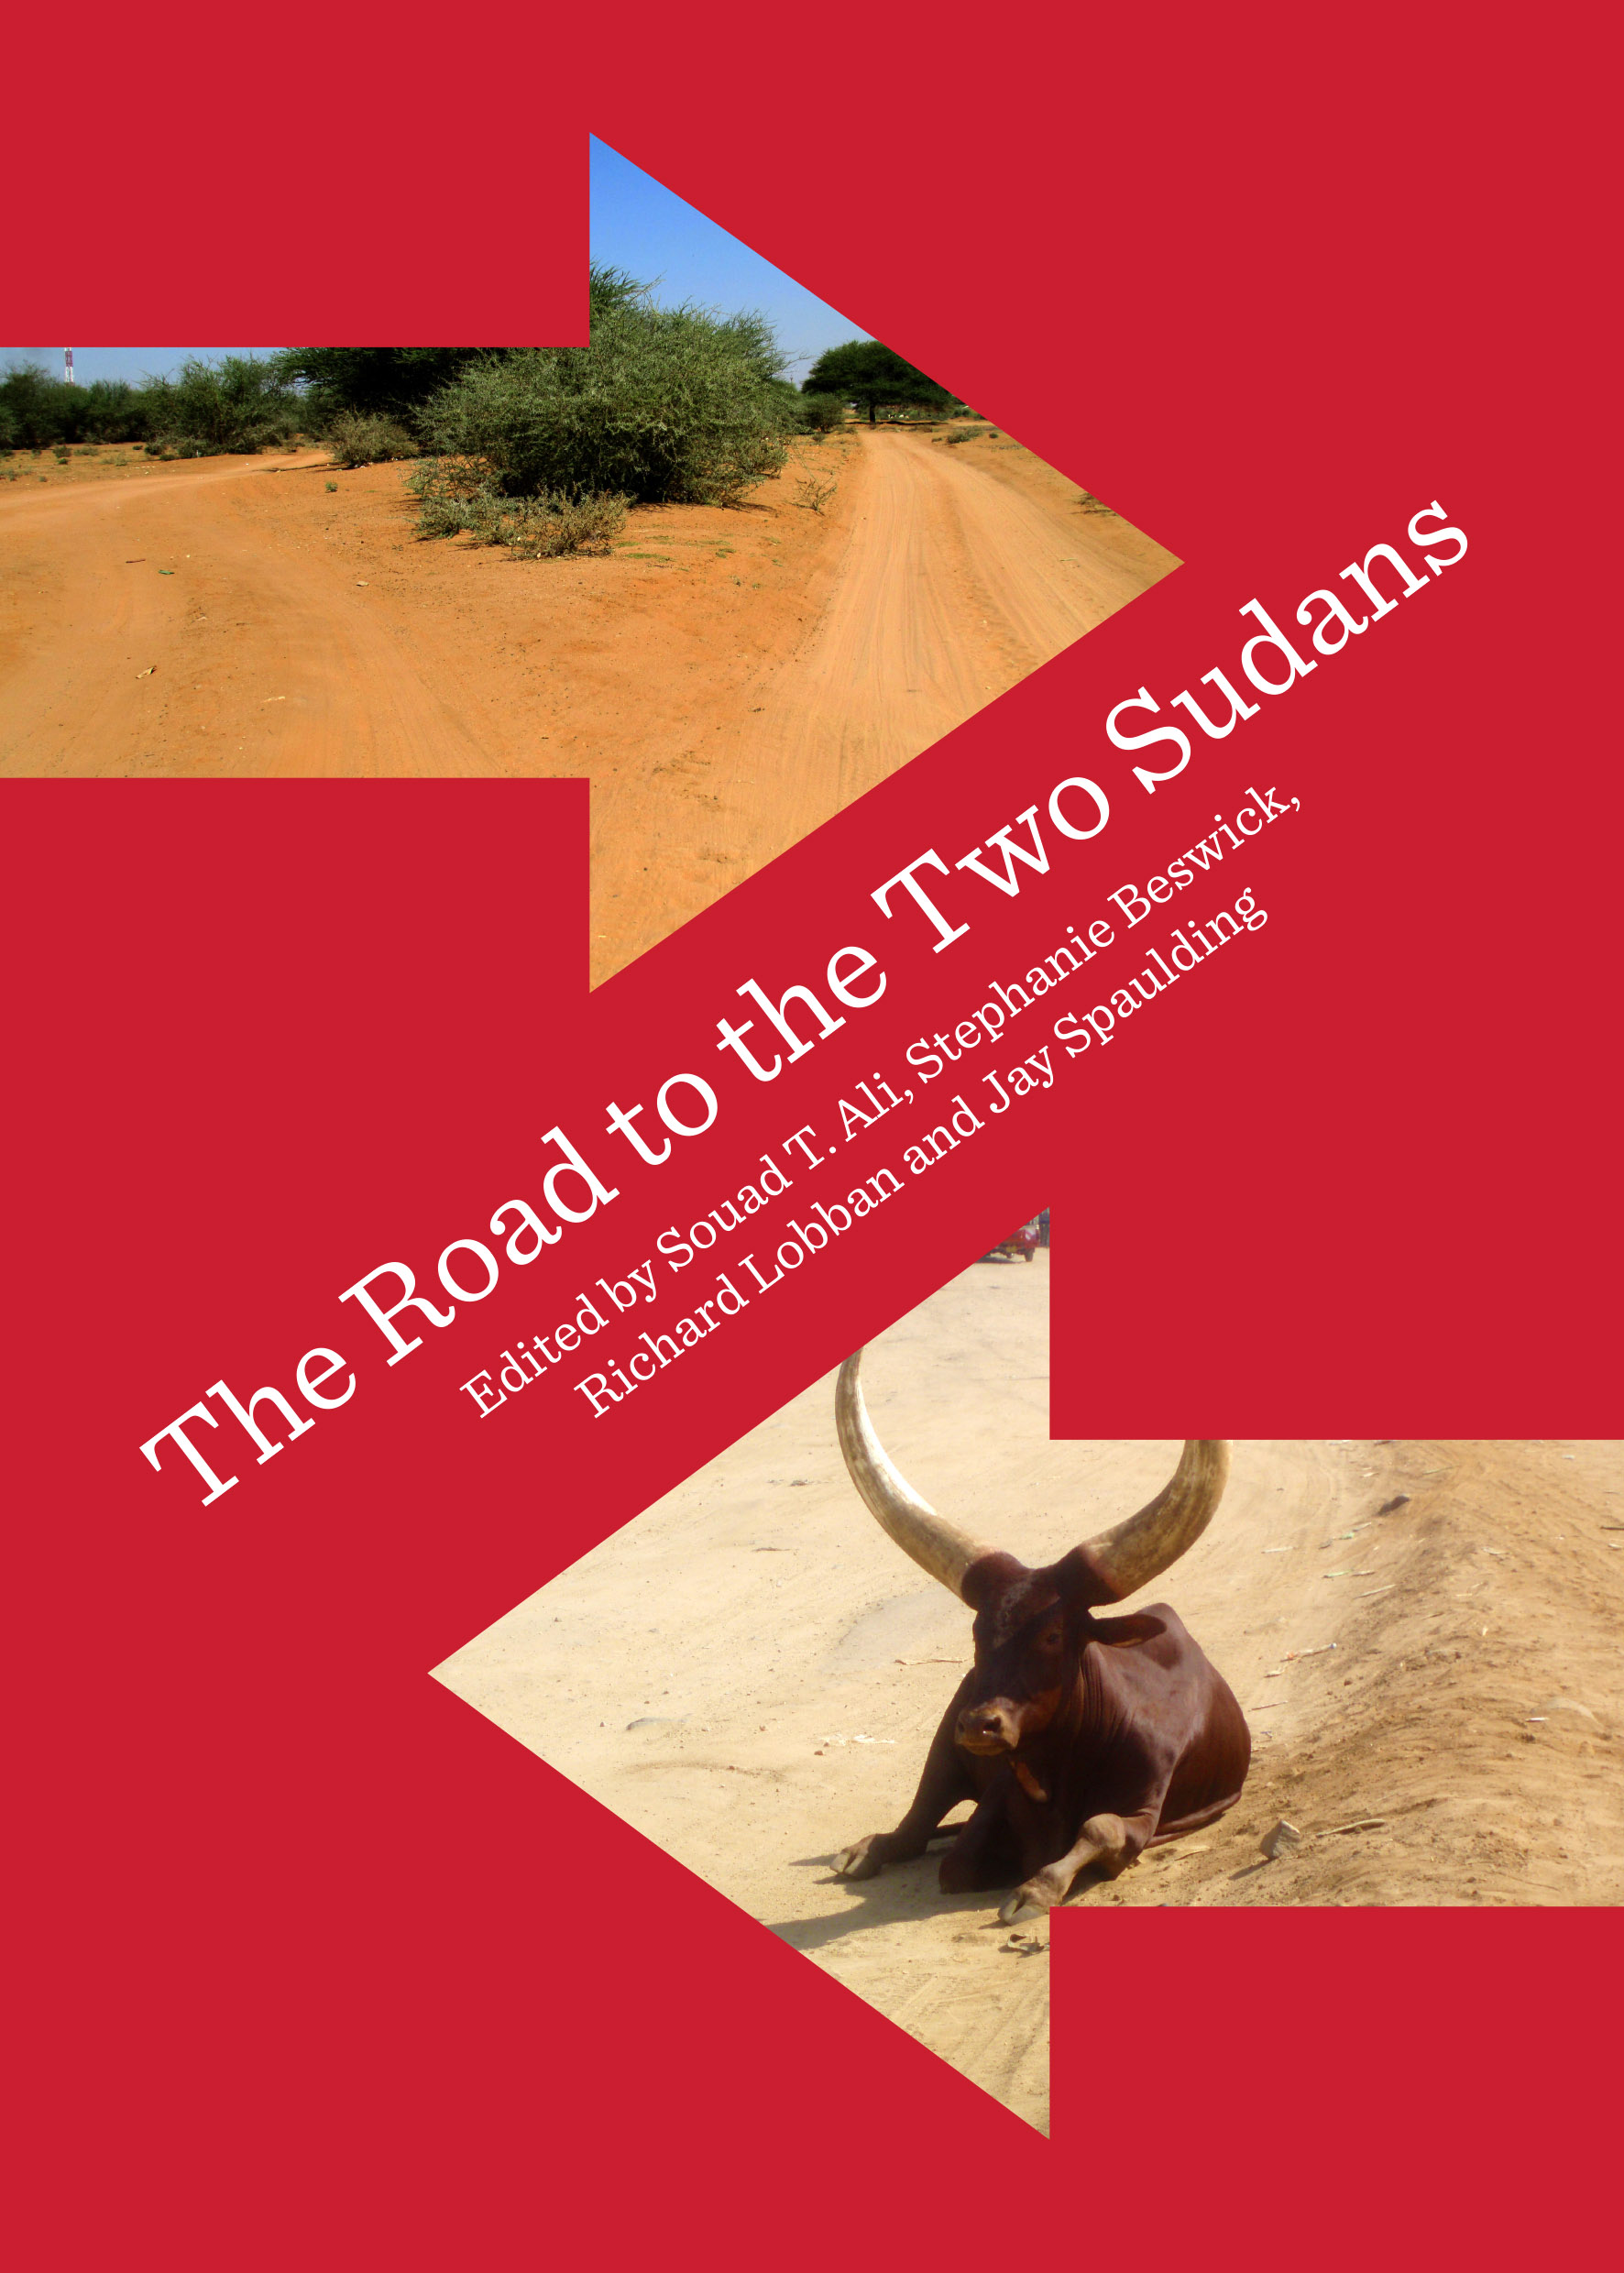 The Road to the Two Sudans